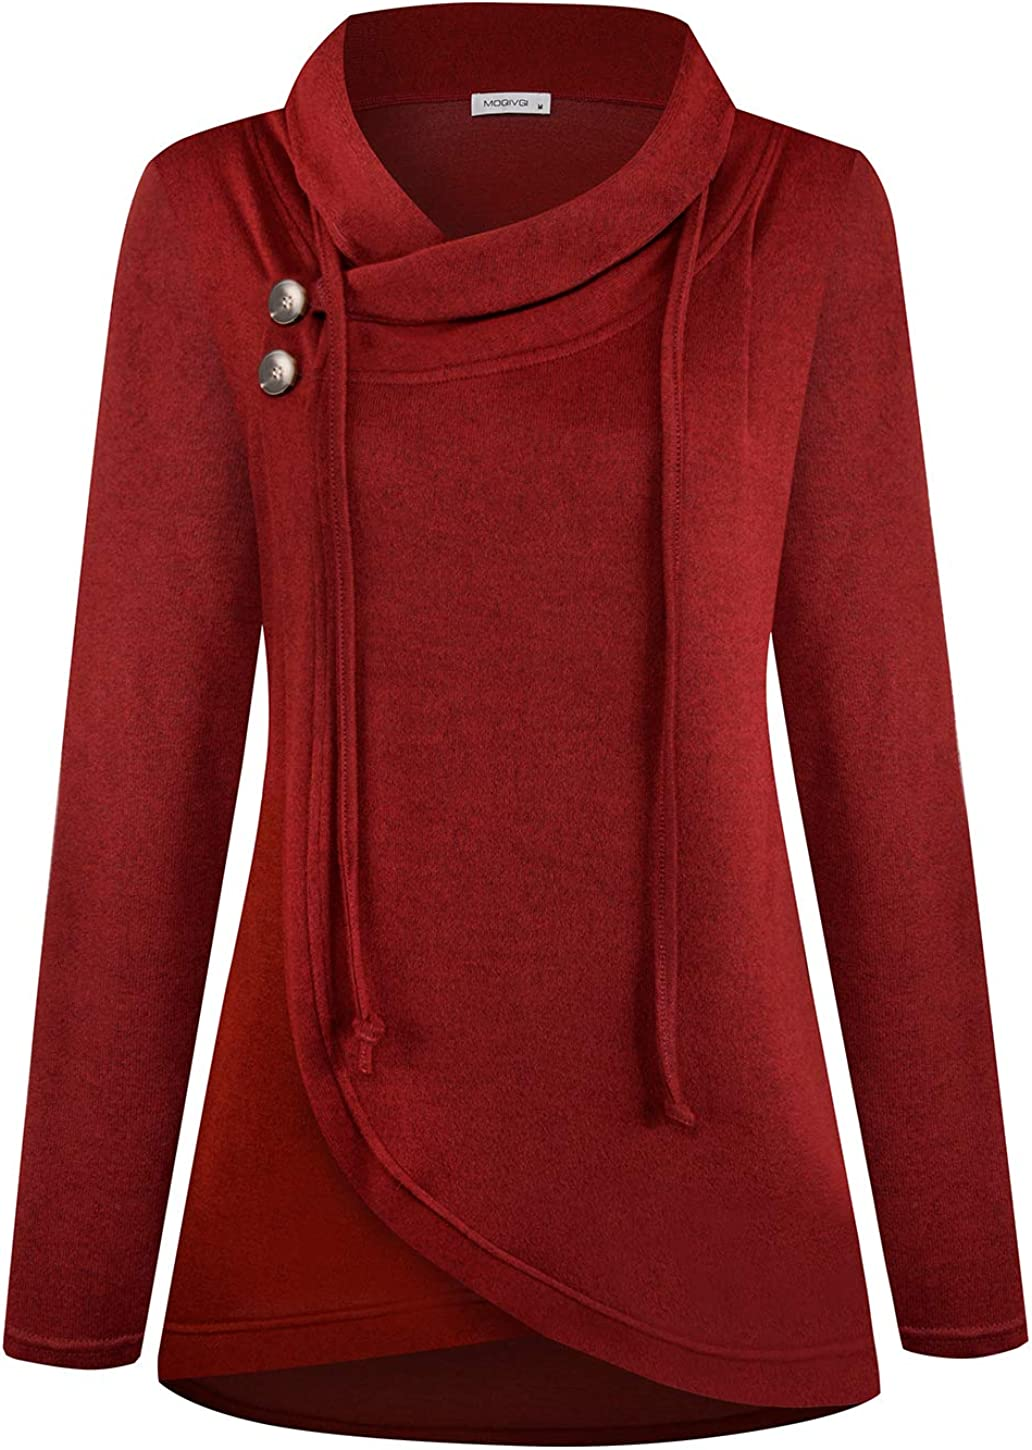 MOQIVGI Womens Long Sleeve Draped Cardigans with Buttons Lightweight Shawl Collar Open Front Sweater Jackets